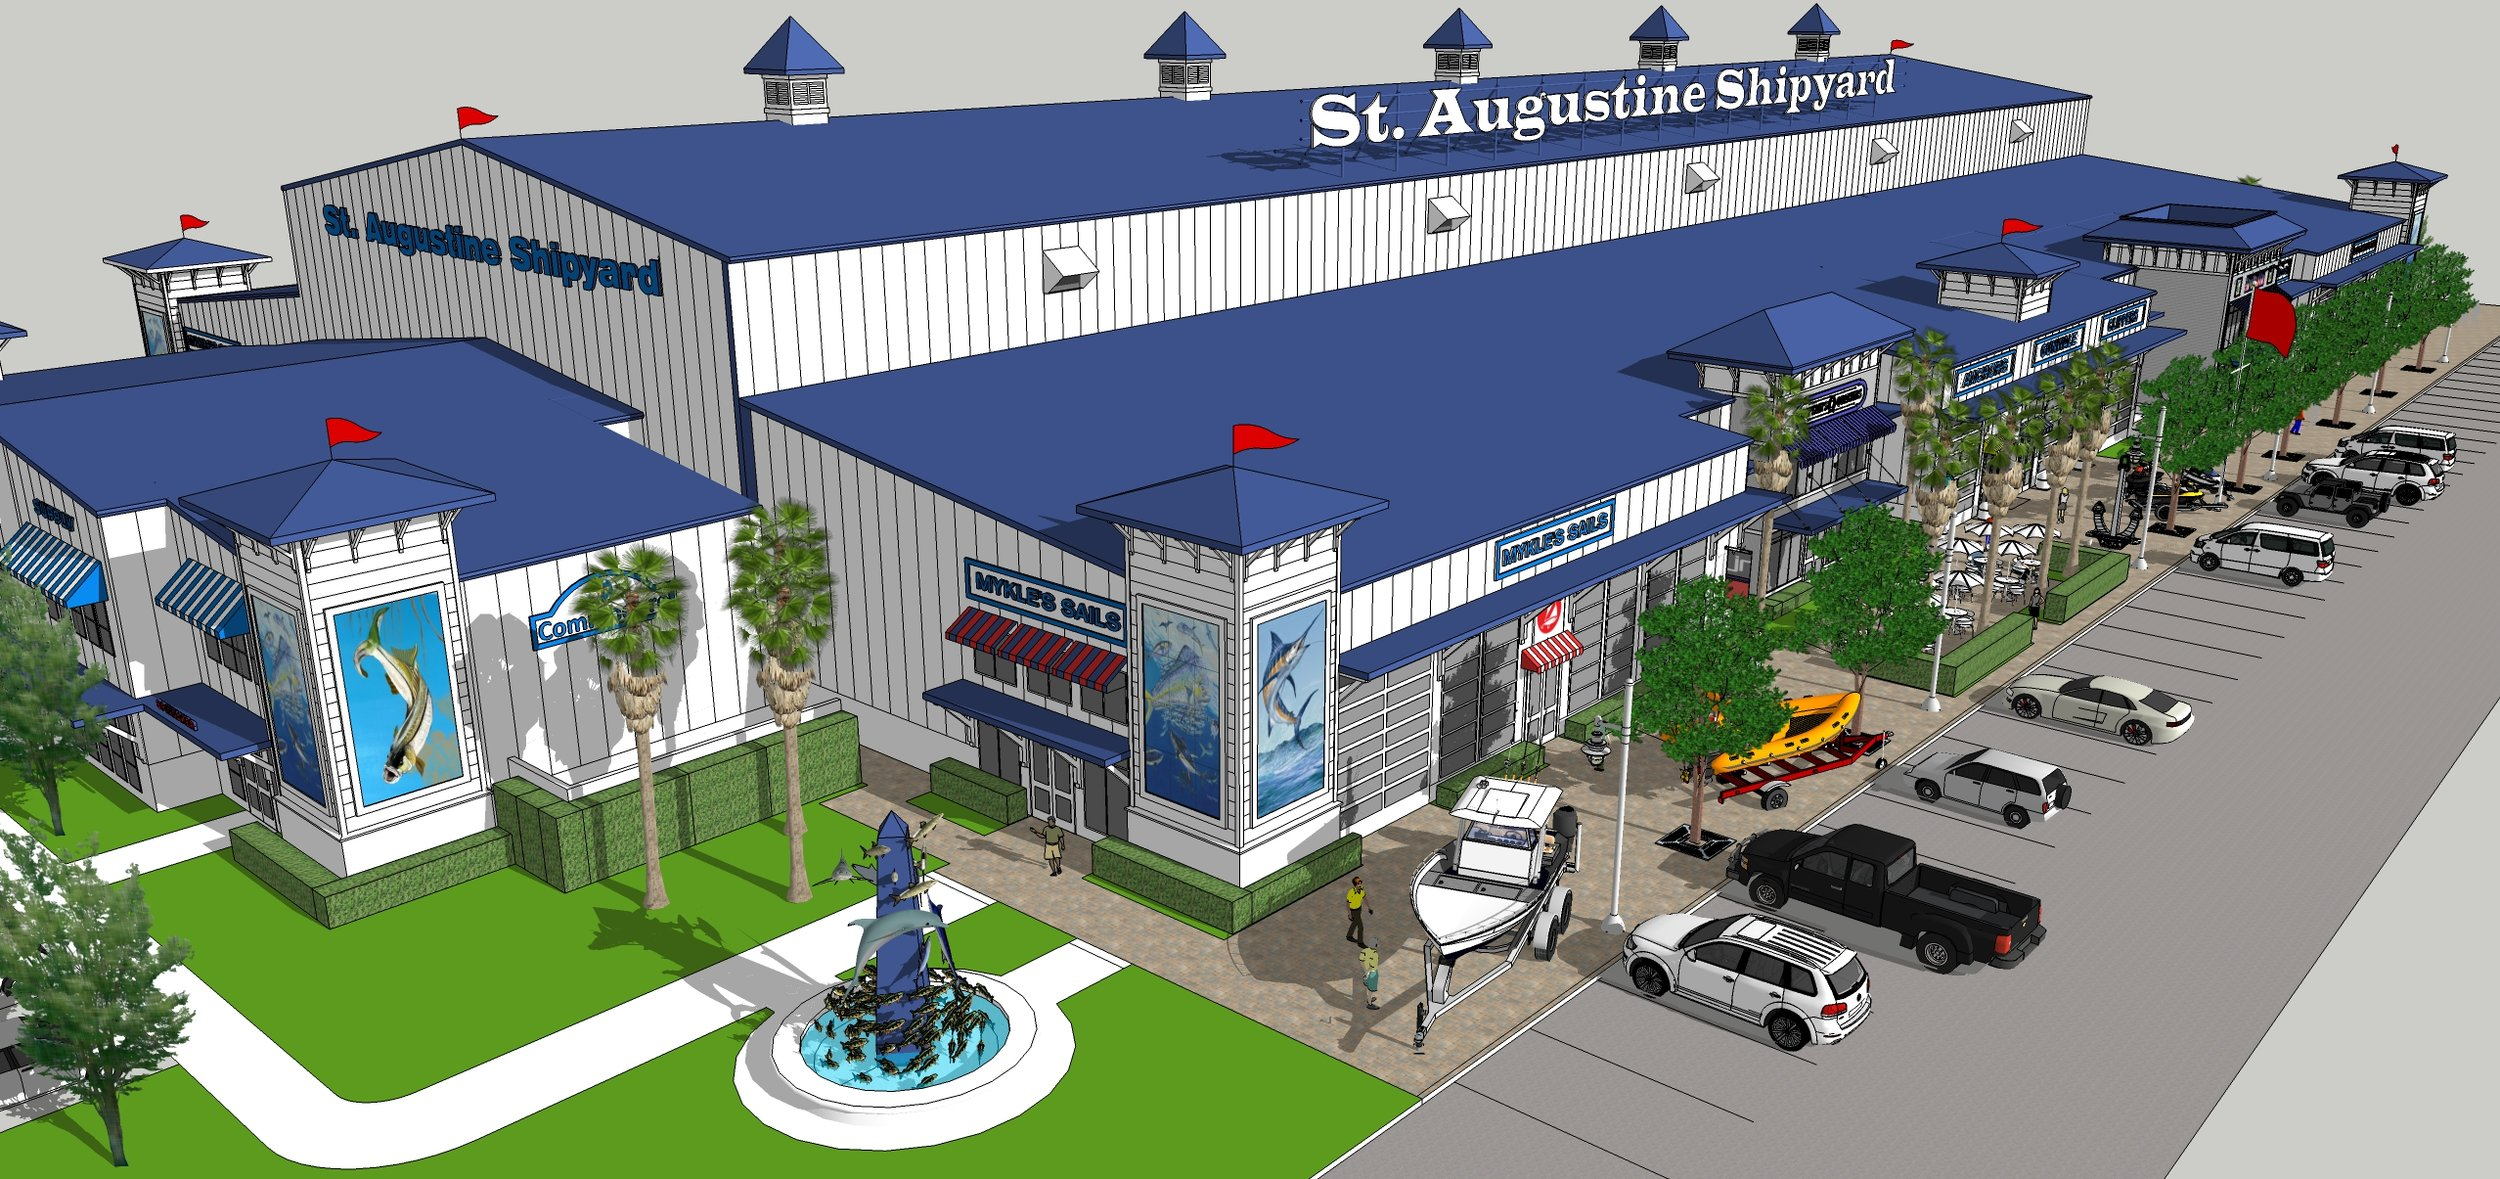 A colored rendering of the St. Augustine Shipyard Structure. It's a large white structure with a blue roof and shows retail spaces along the side with trees and parking out front